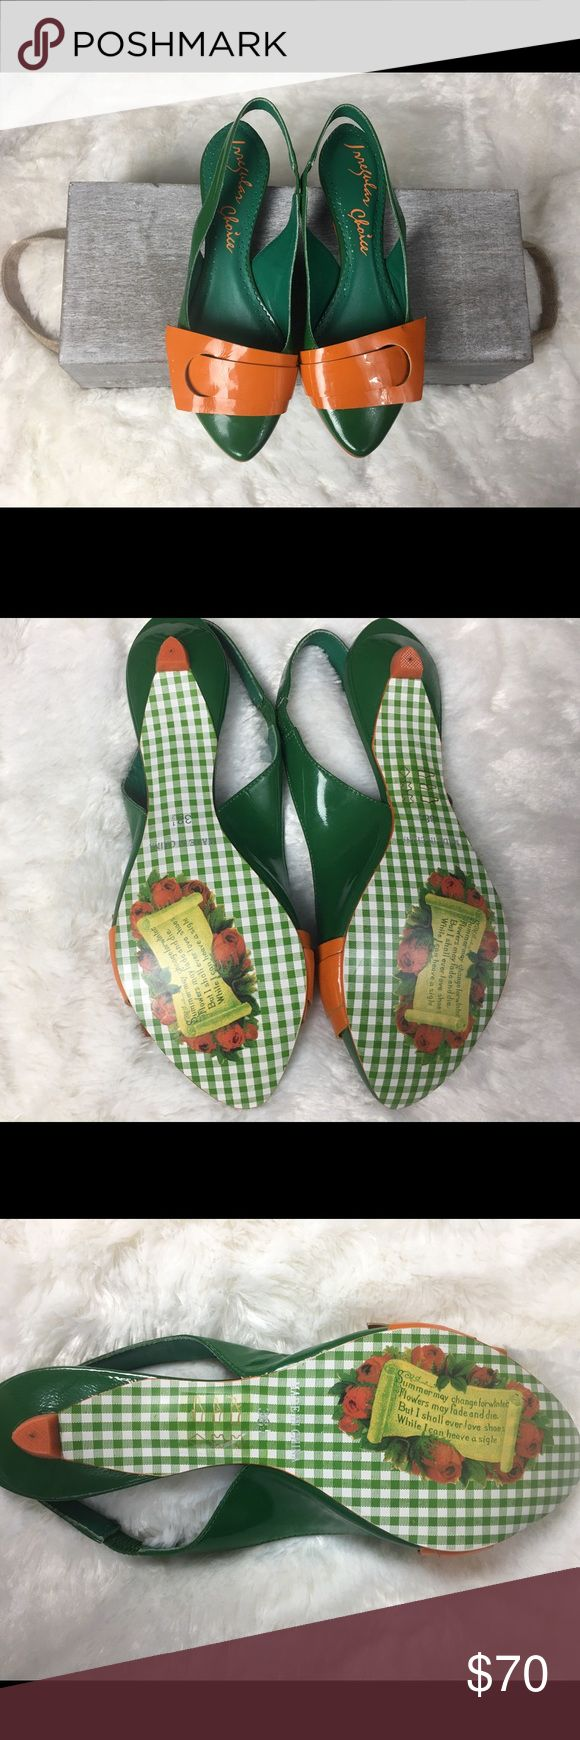 Irregular Choice size 38 1/2 (USA size 7 1/2) Irregular Choice NWOB Green & Orange Kitten Heel Sandals. Irregular Choice website states 38 1/2 is equivalent to US size 7 1/2. Brand new Condition without tags or box. Irregular Choice Shoes Sandals